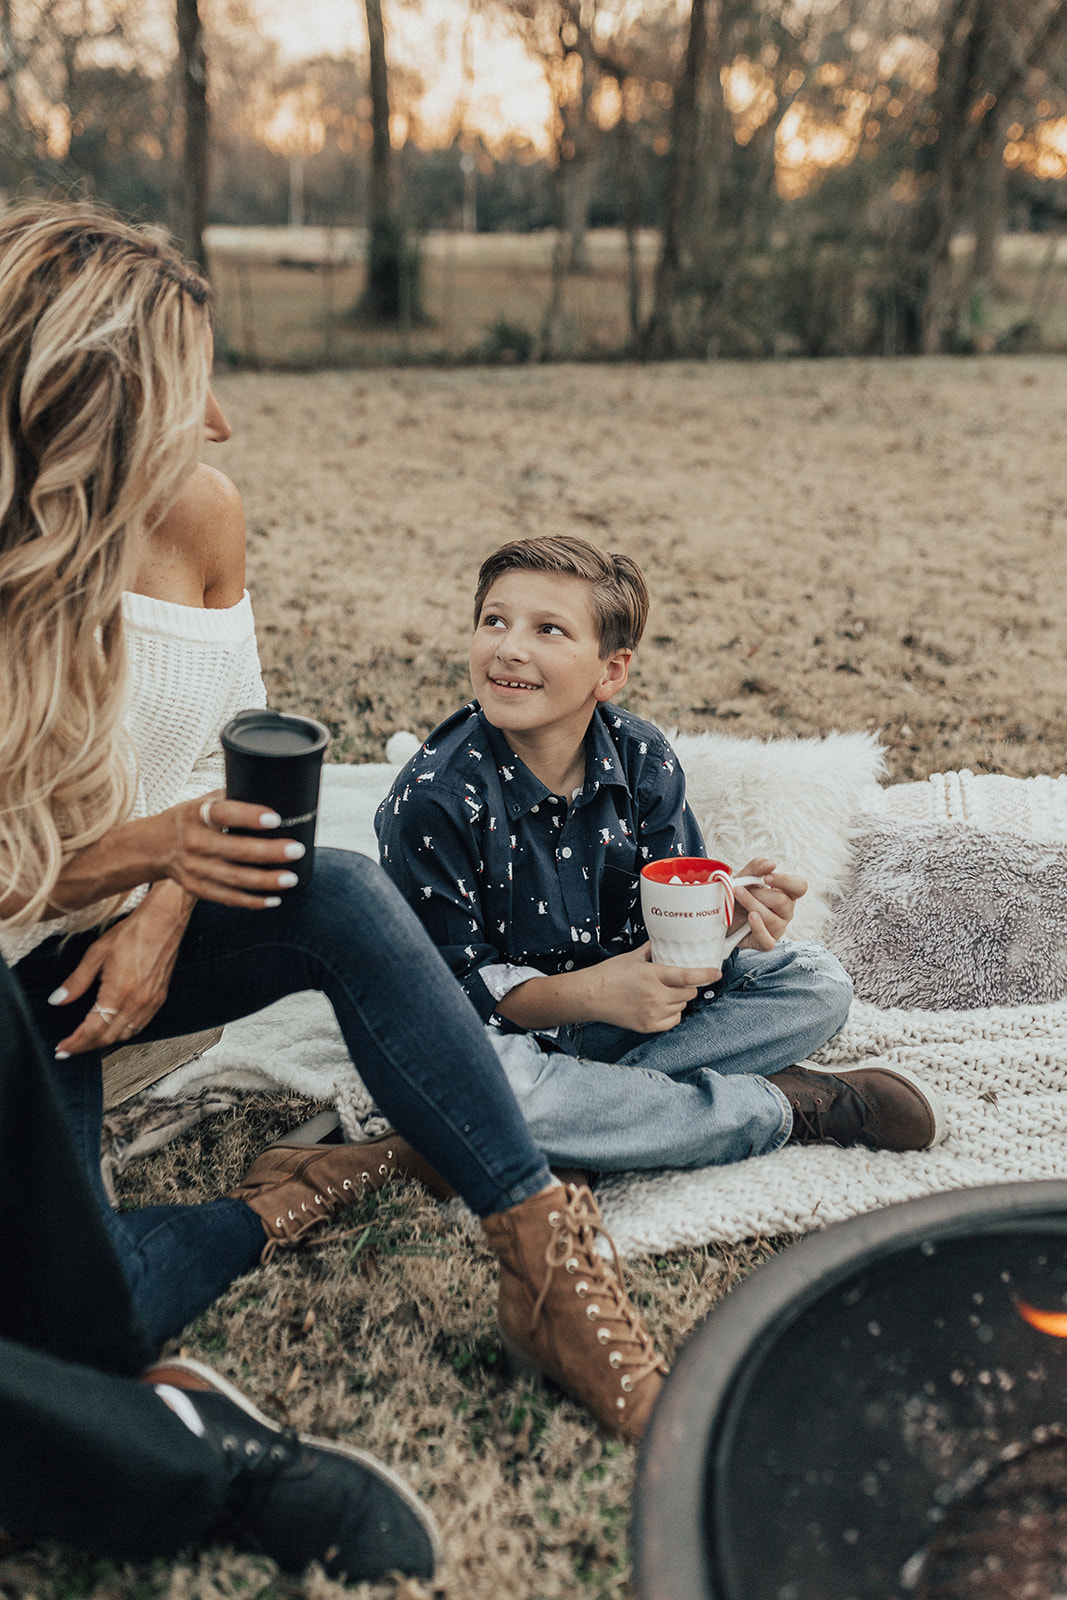 Mother and Son Photoshoot ideas